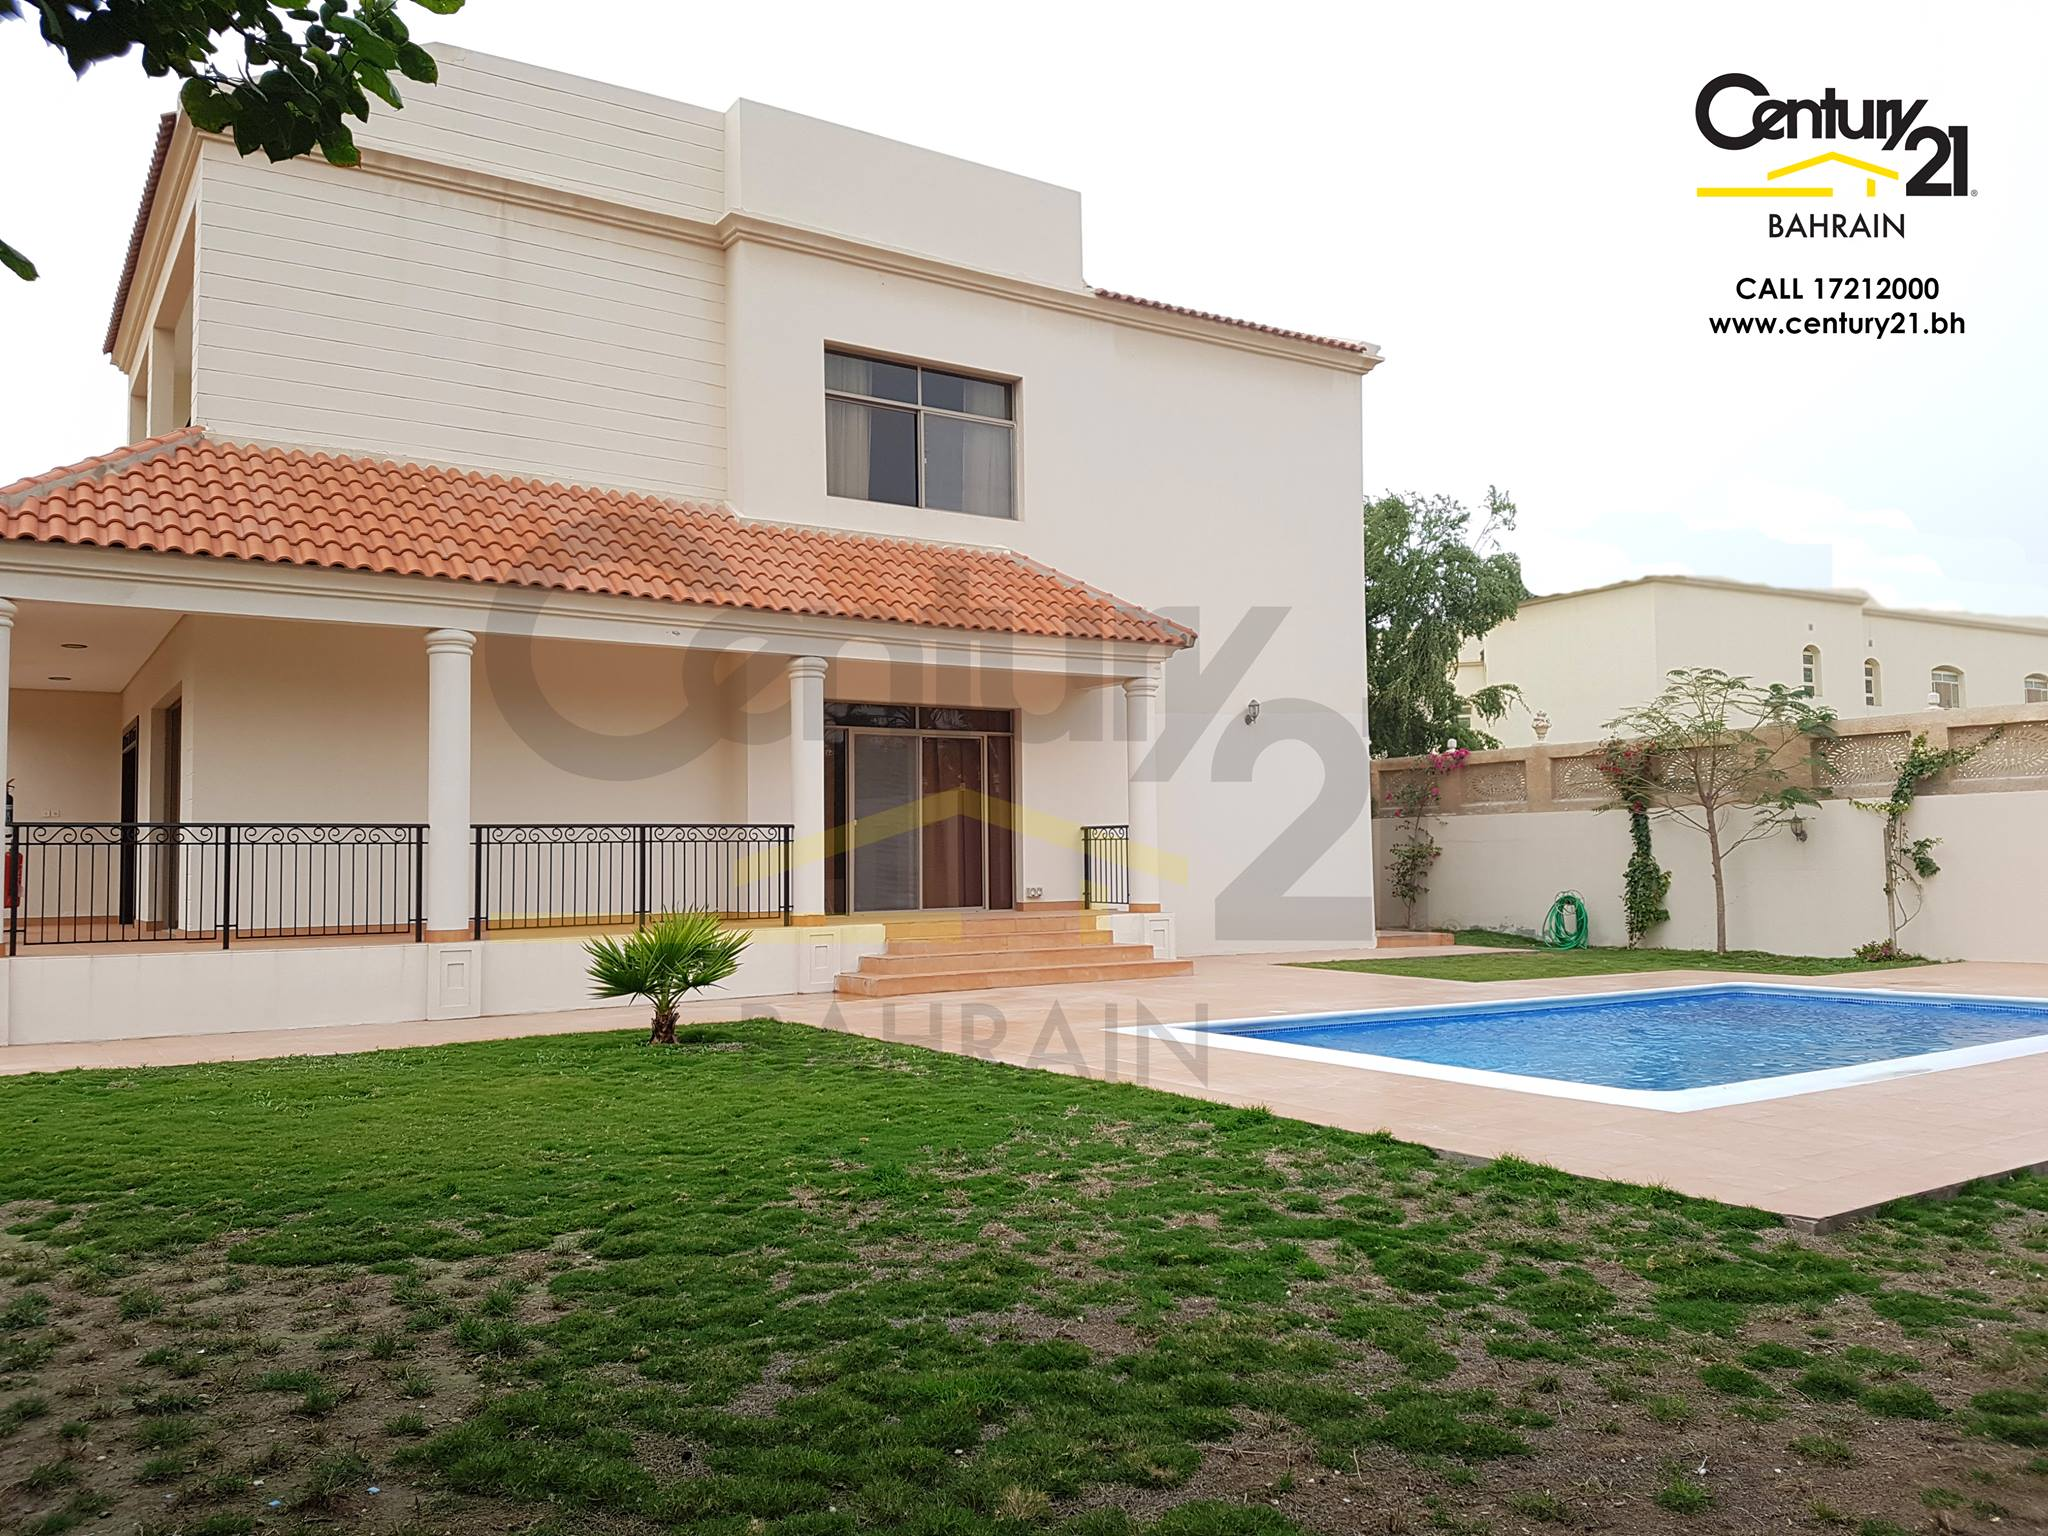 SEMI FURNISHED 4 BEDROOM COMPOUND VILLA FOR BD 1,500 INCLUSIVE. BD 1,300 EXCLUSIVE VR692